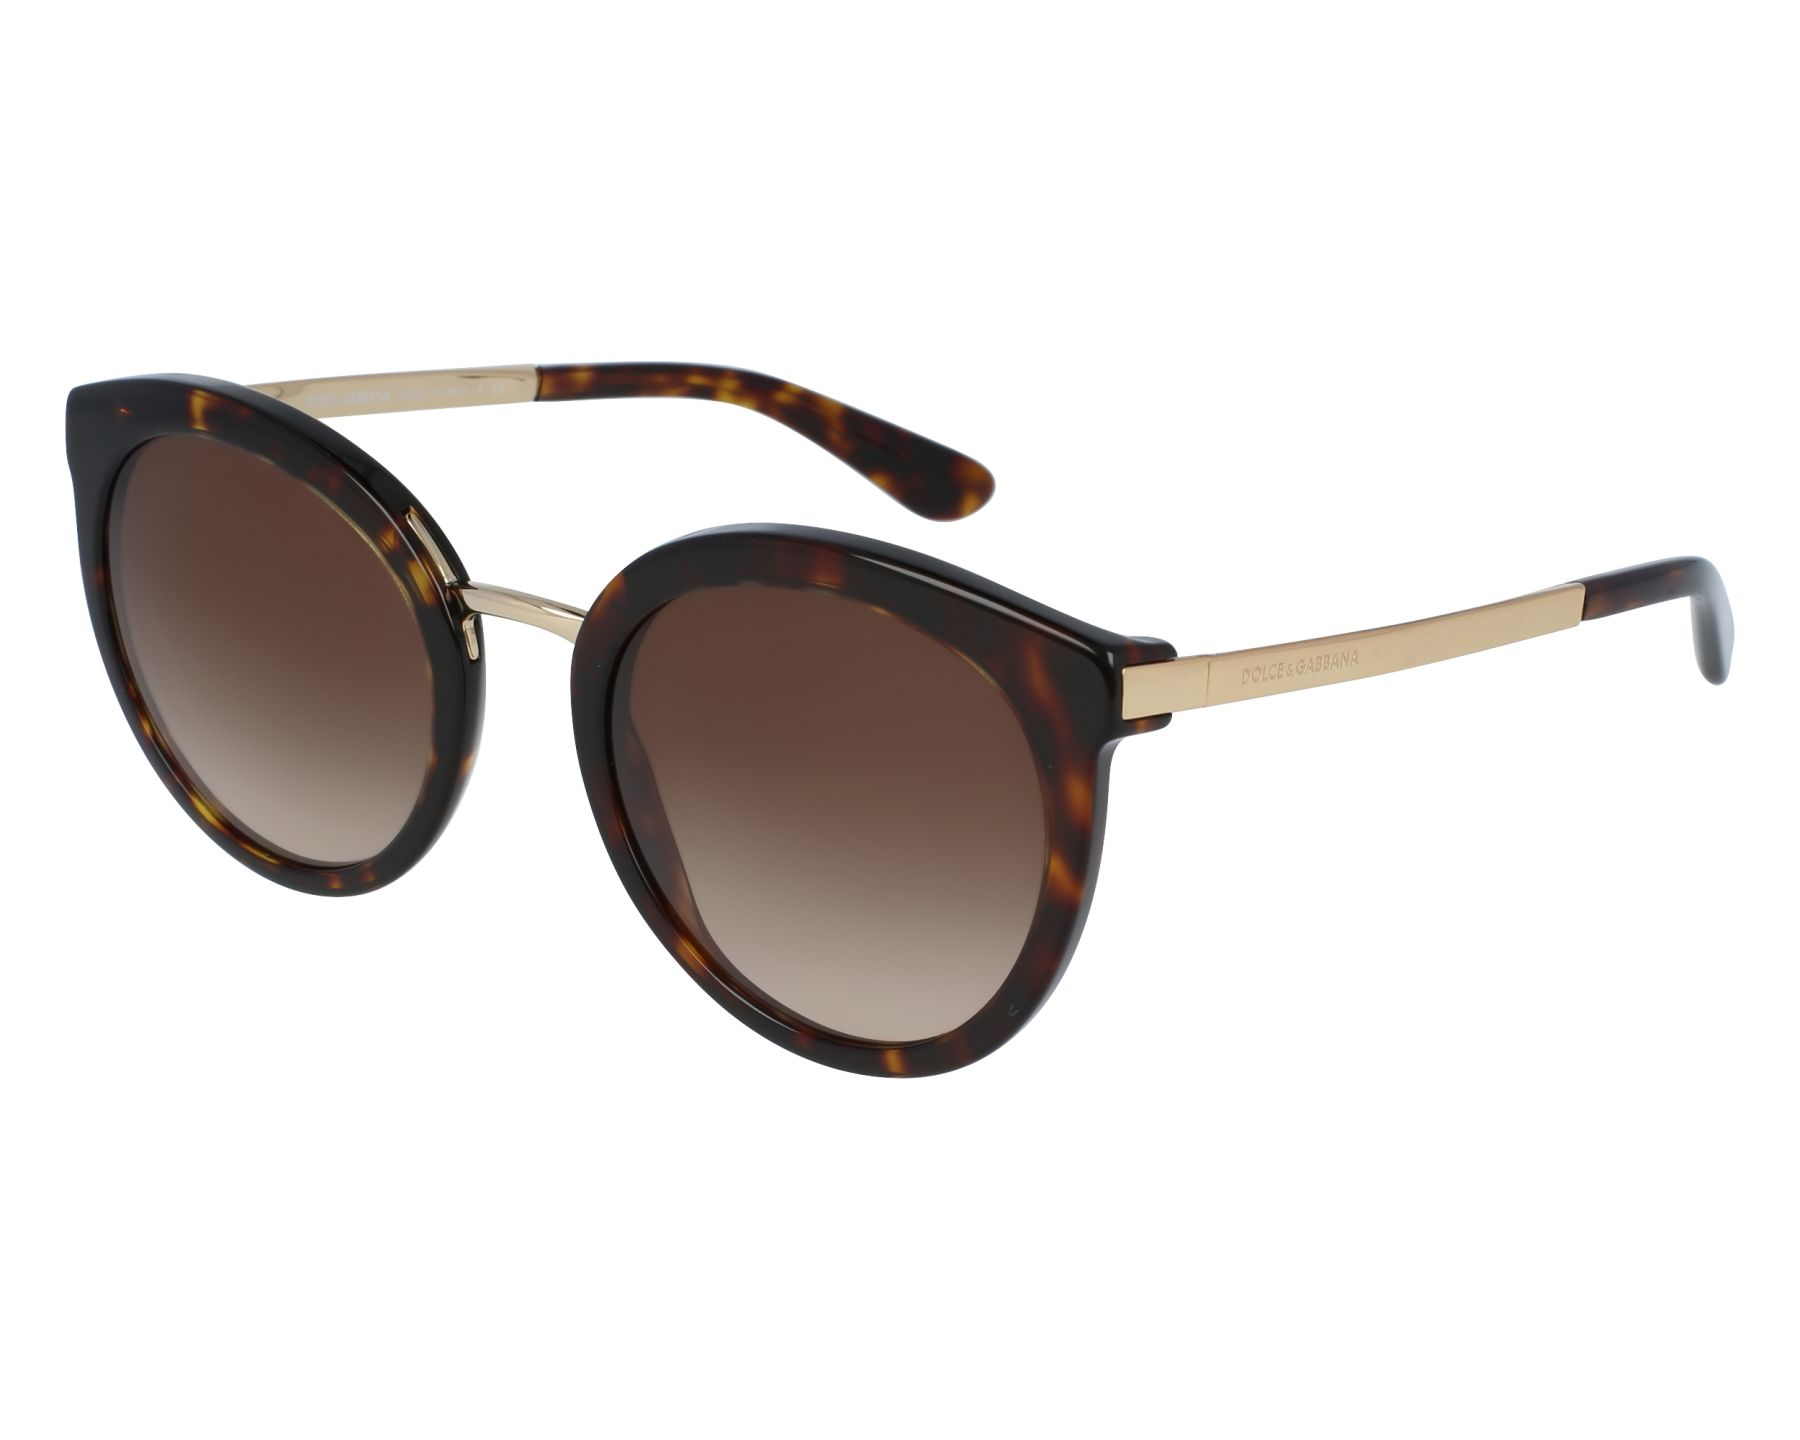 c30f87f1df Sunglasses Dolce   Gabbana DG-4268 502 13 52-22 Brown Gold front